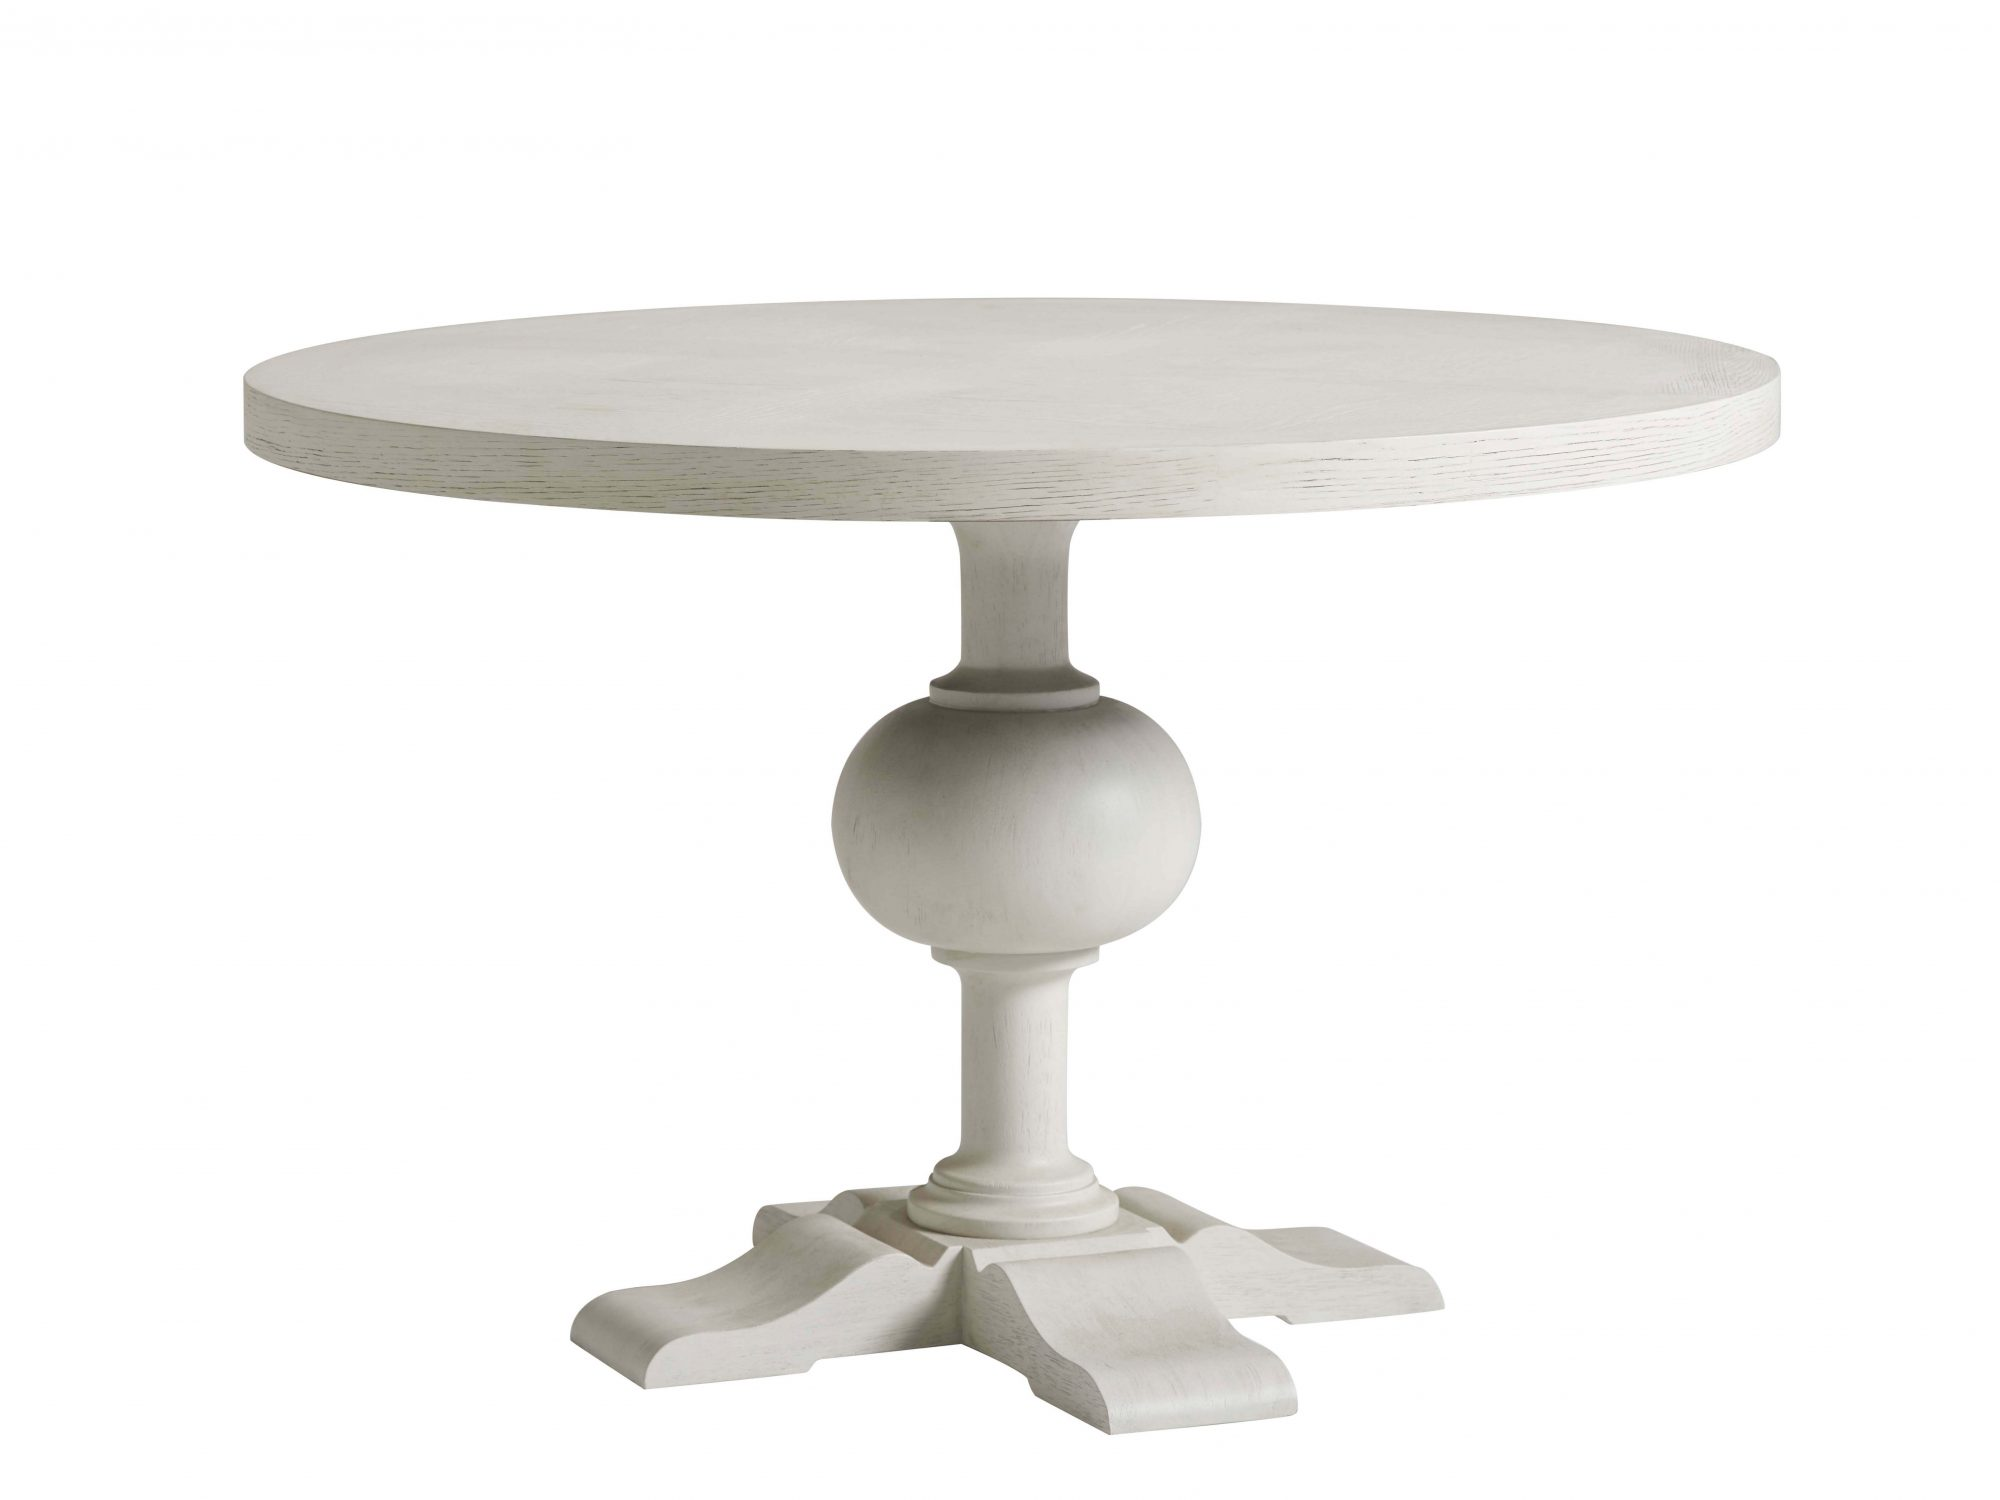 Escape Dining Table from the Coastal Living Furniture Collection